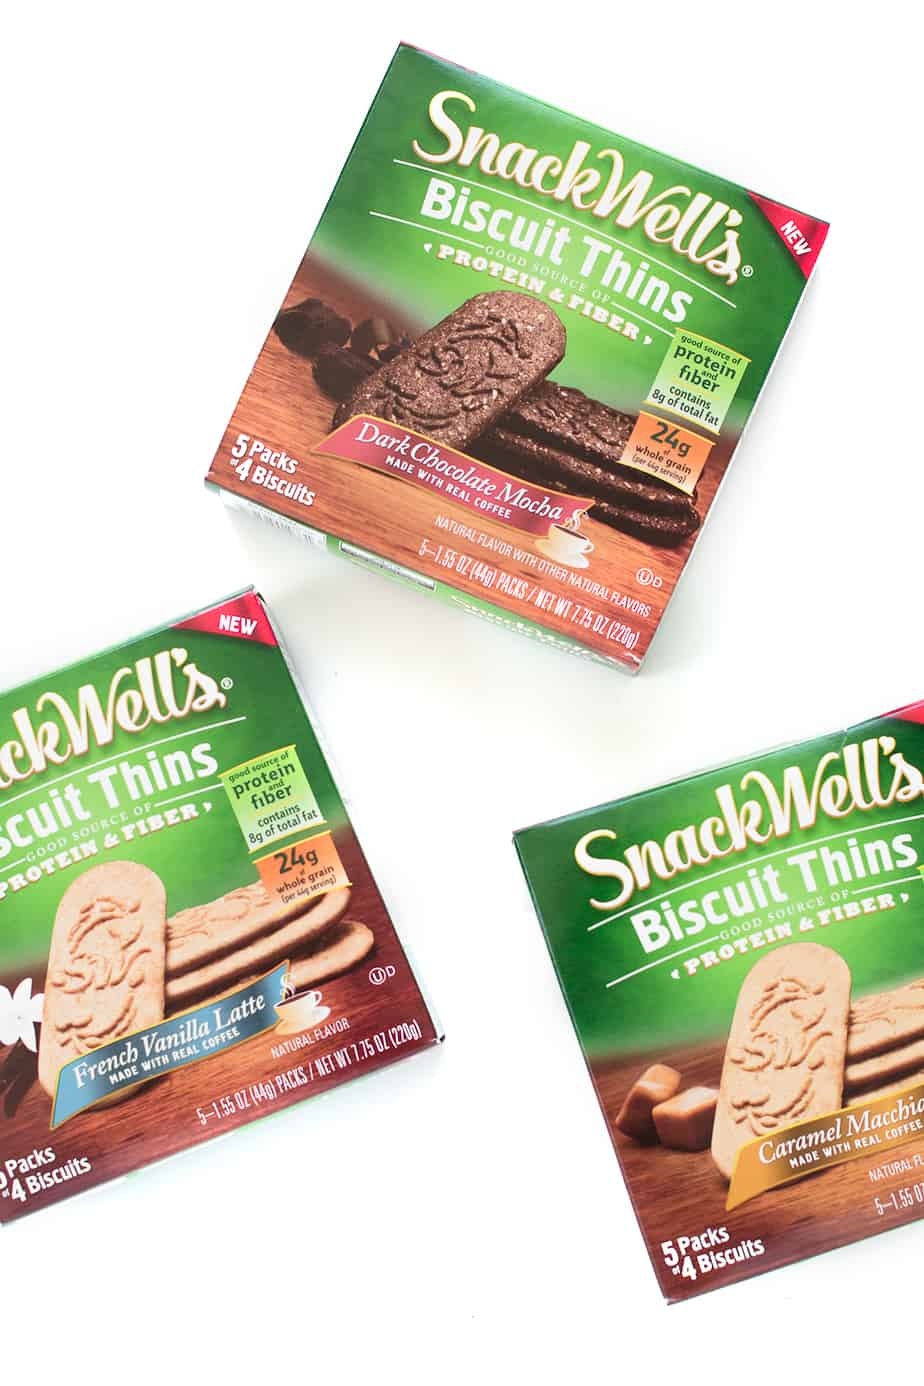 snack wells biscuit thins morning tips to make my entire day more productive